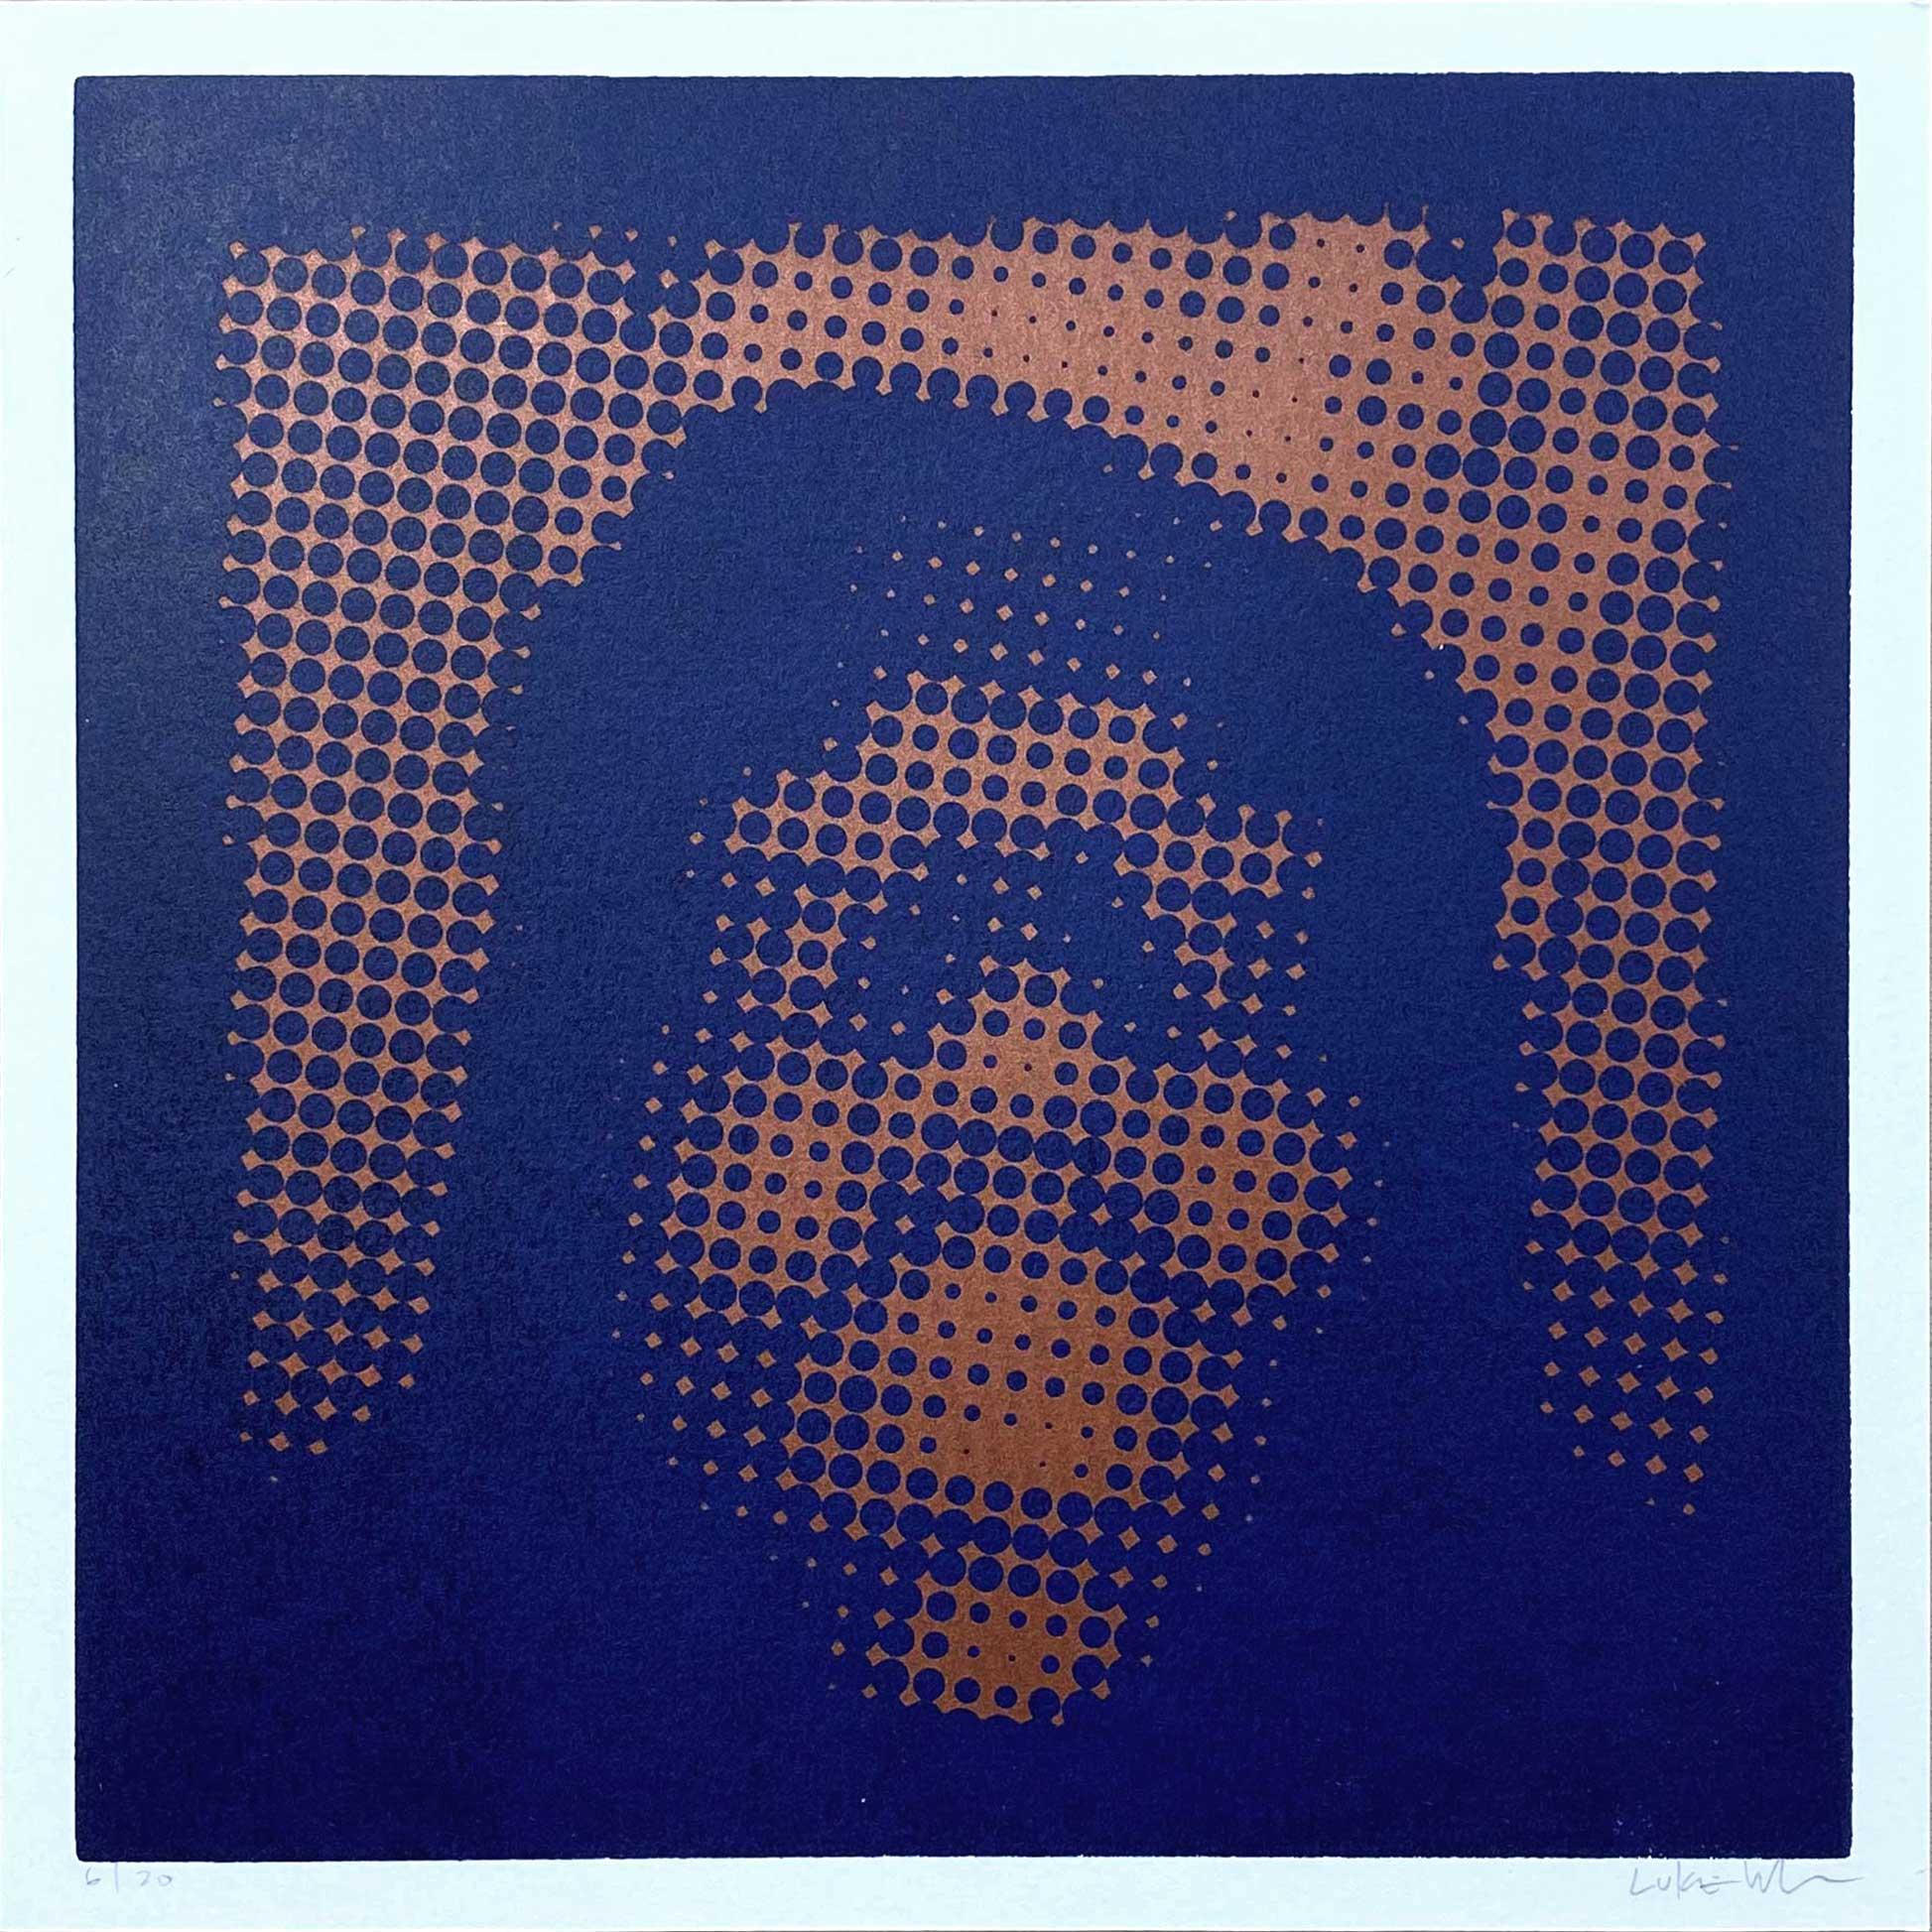 Notorious / Halftone 12x12 / Copper